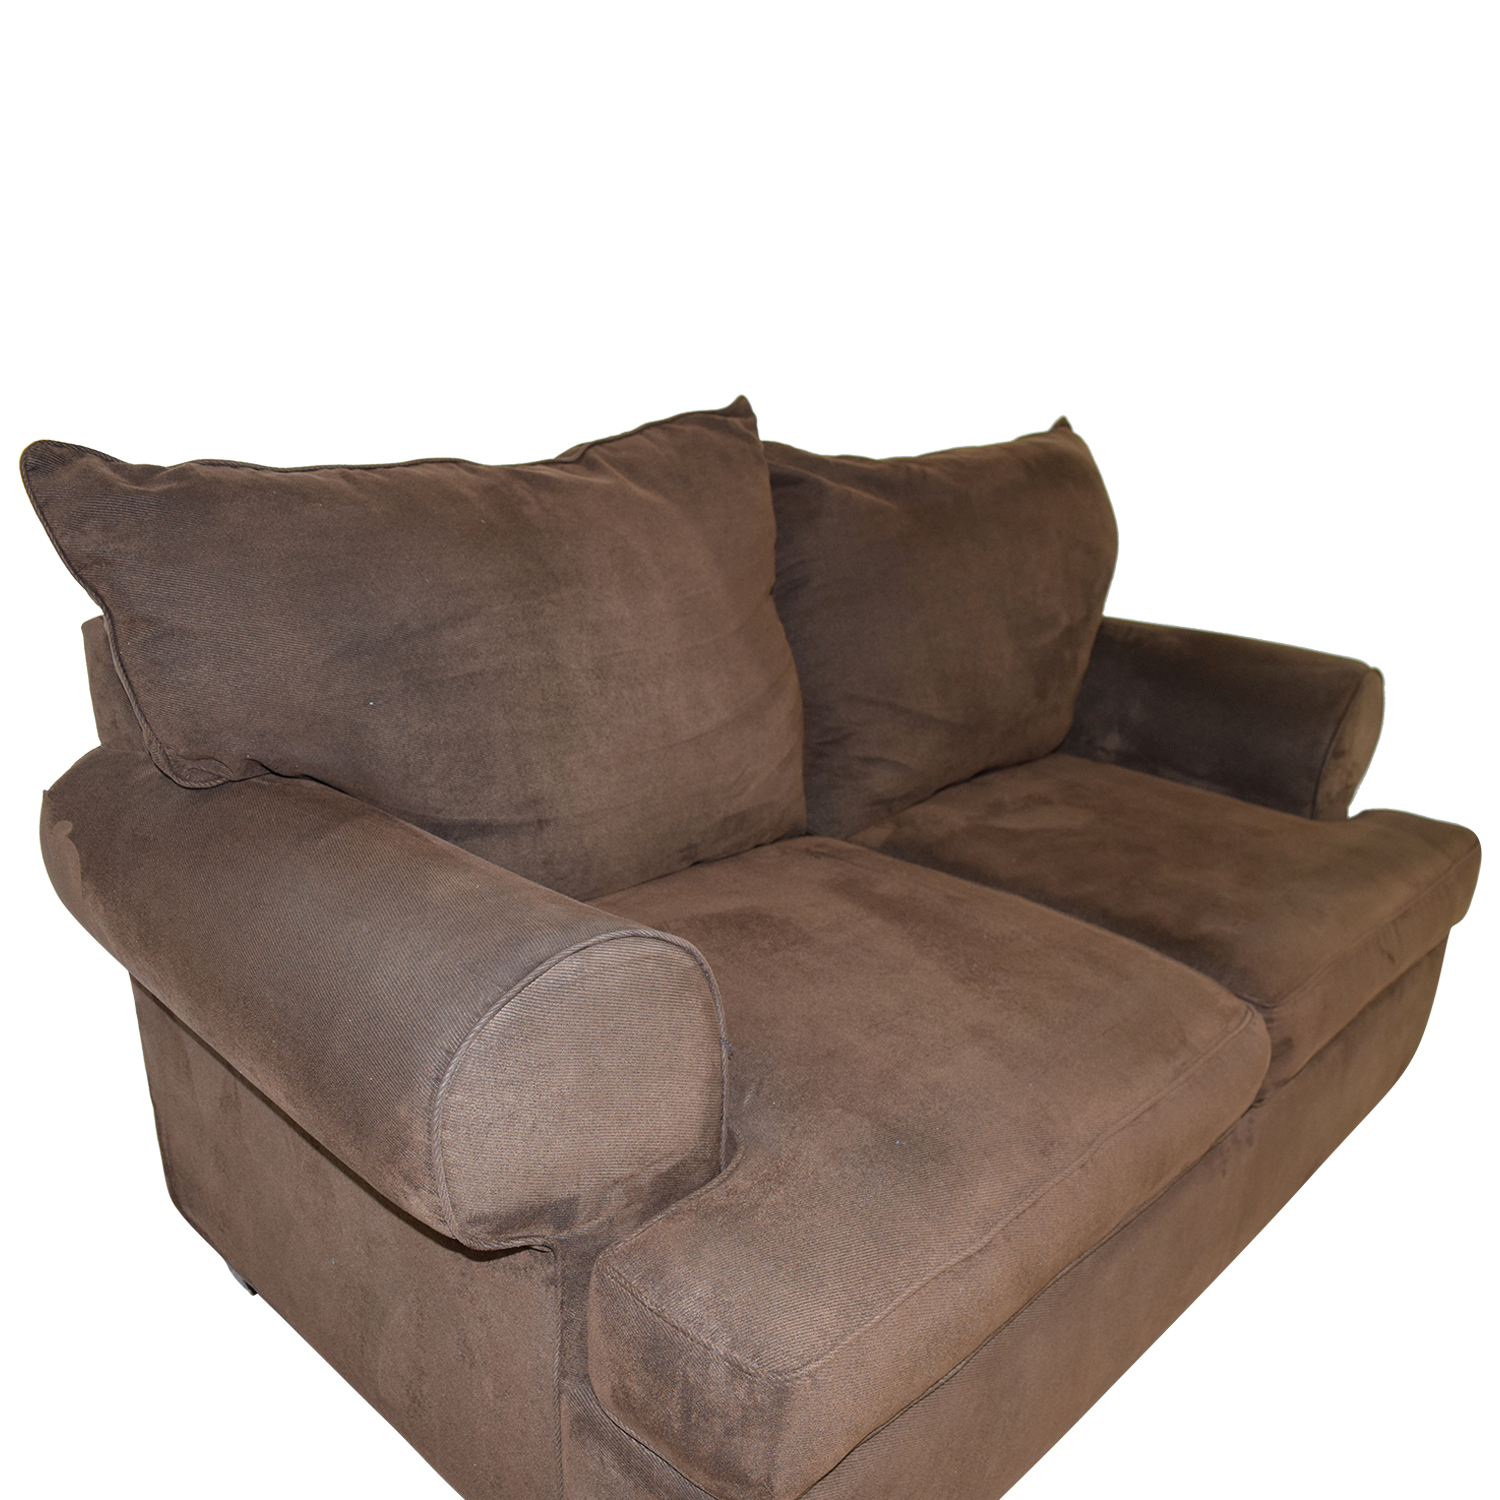 Raymour & Flanigan Raymour & Flanigan Brown Two-Cushion Loveseat for sale